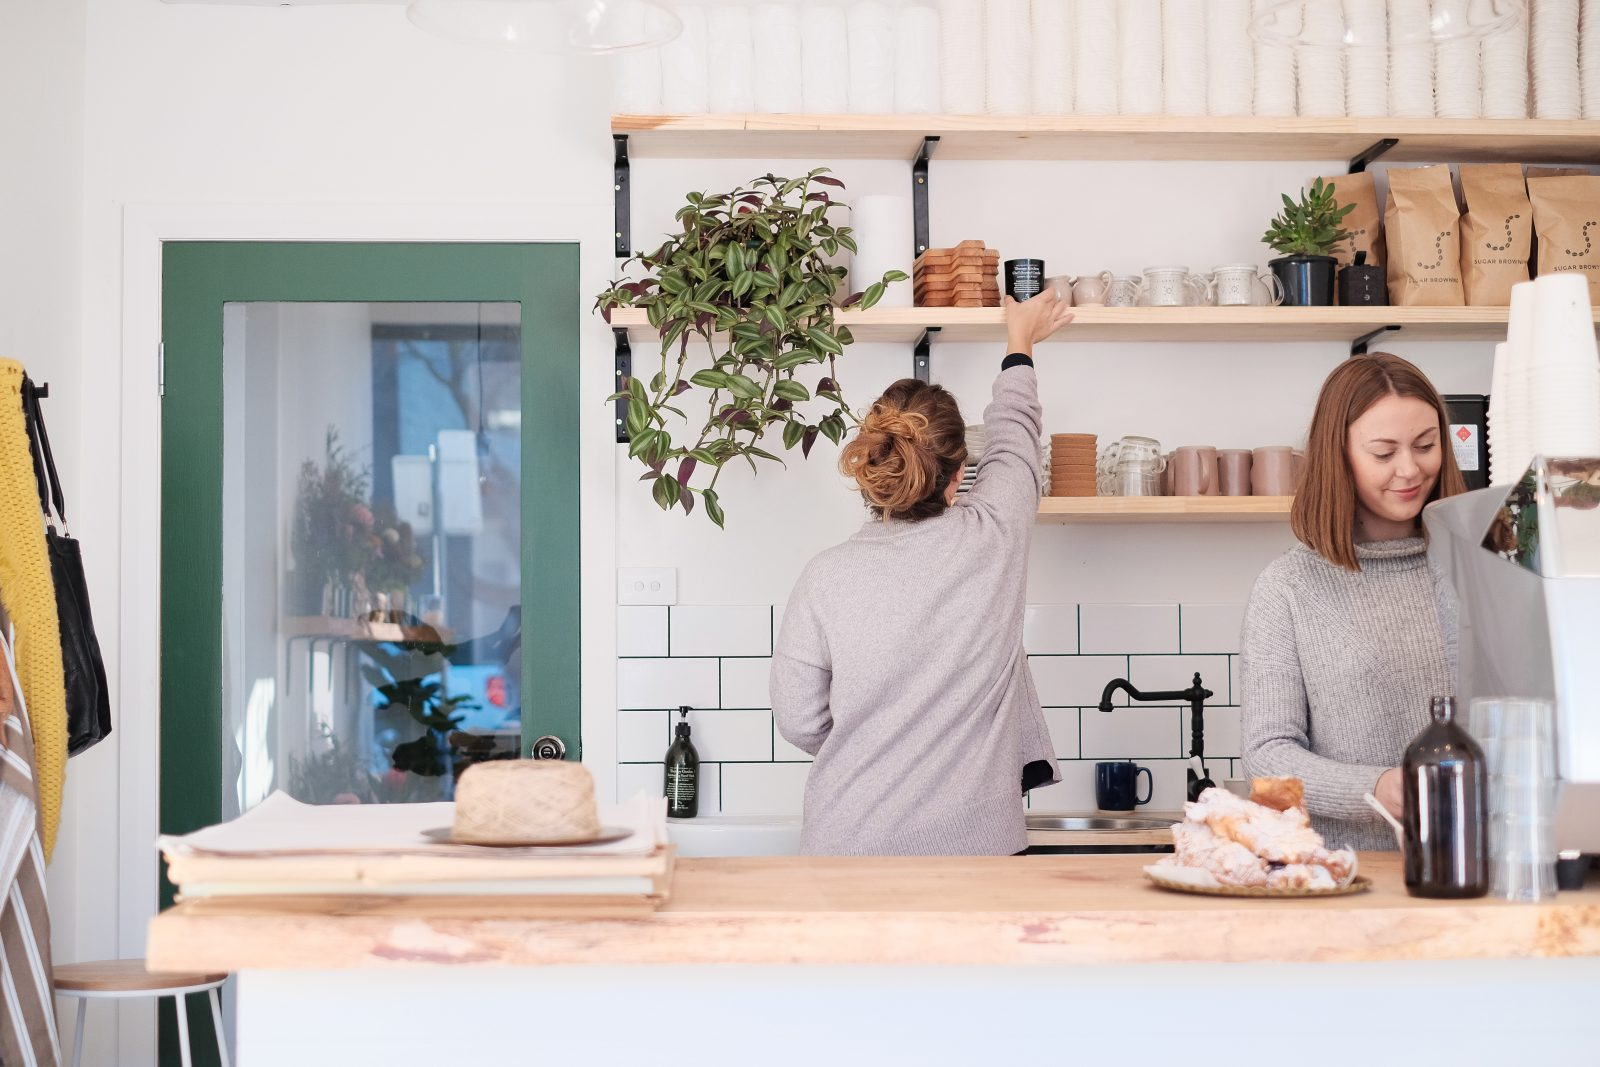 Fleur & Brew Gilbert Street Adelaide Image by City Brief